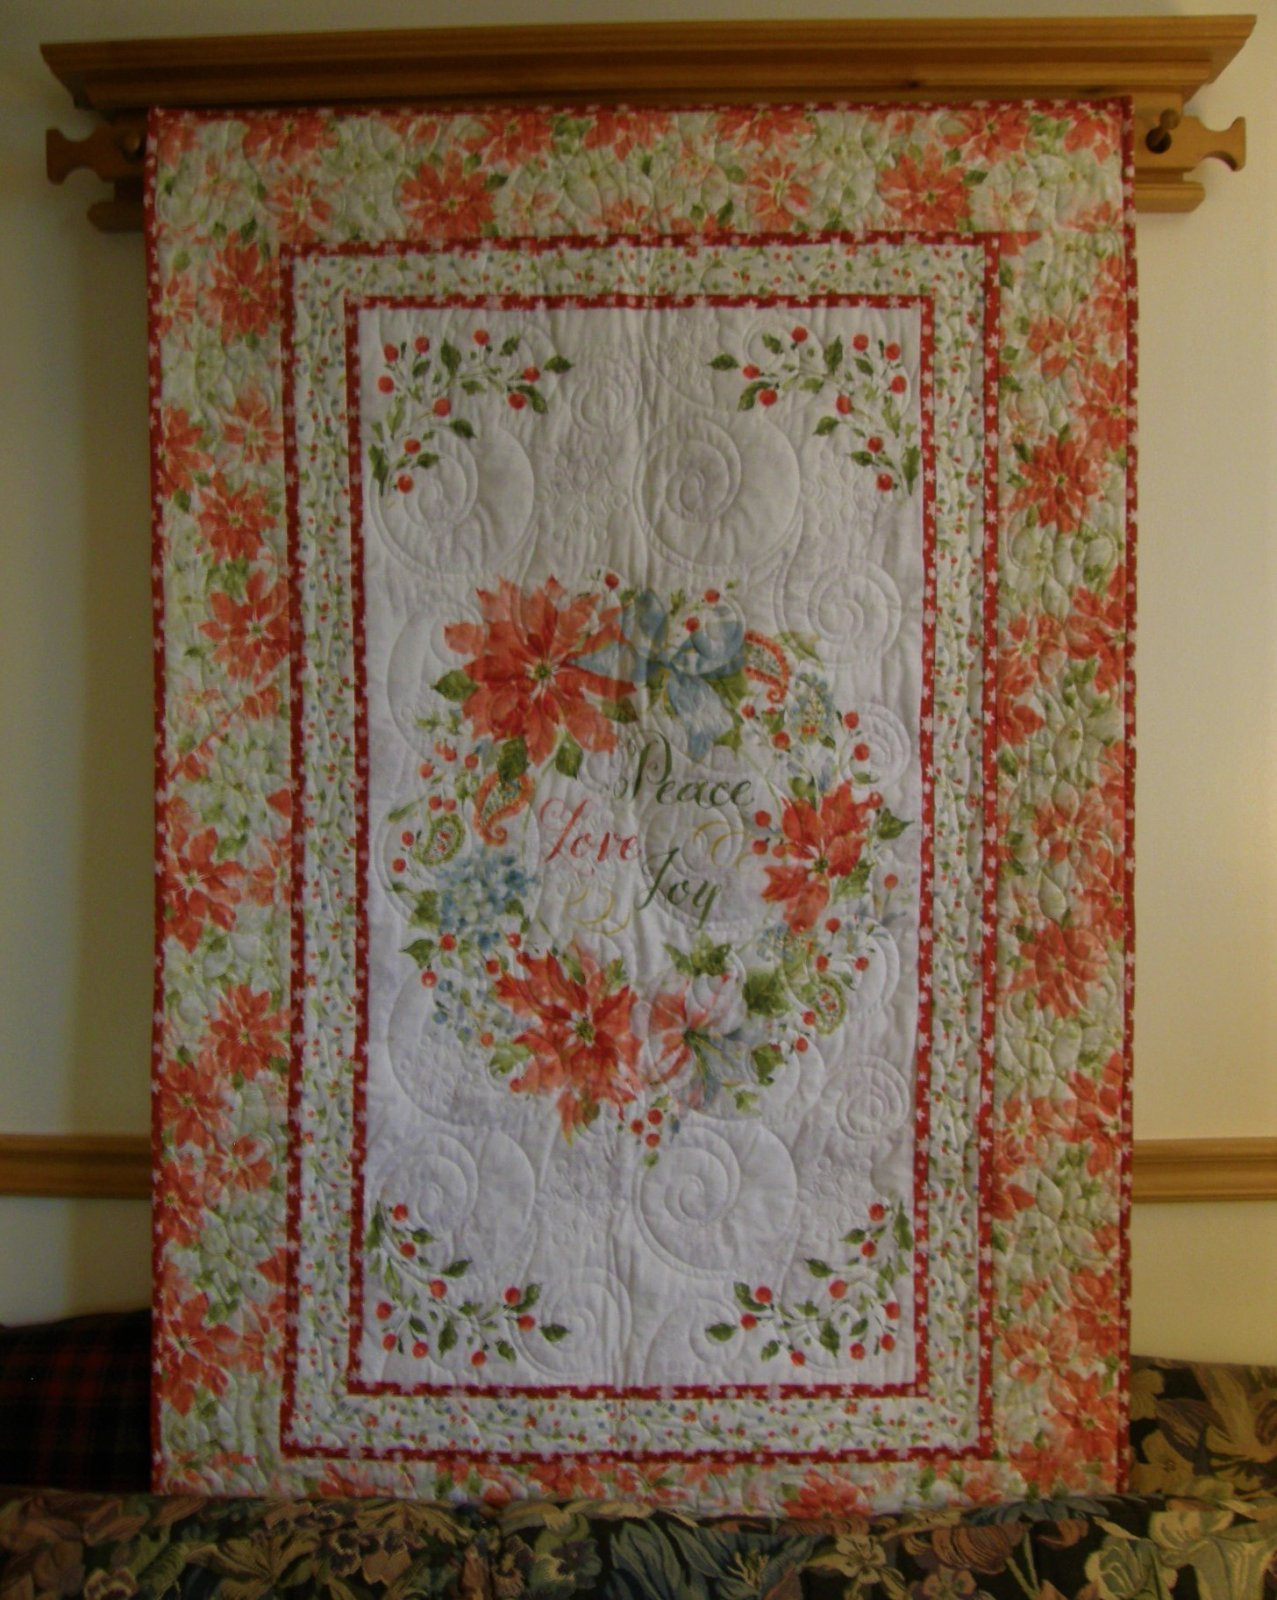 Peace, Love and Joy Finished Wall Hanging